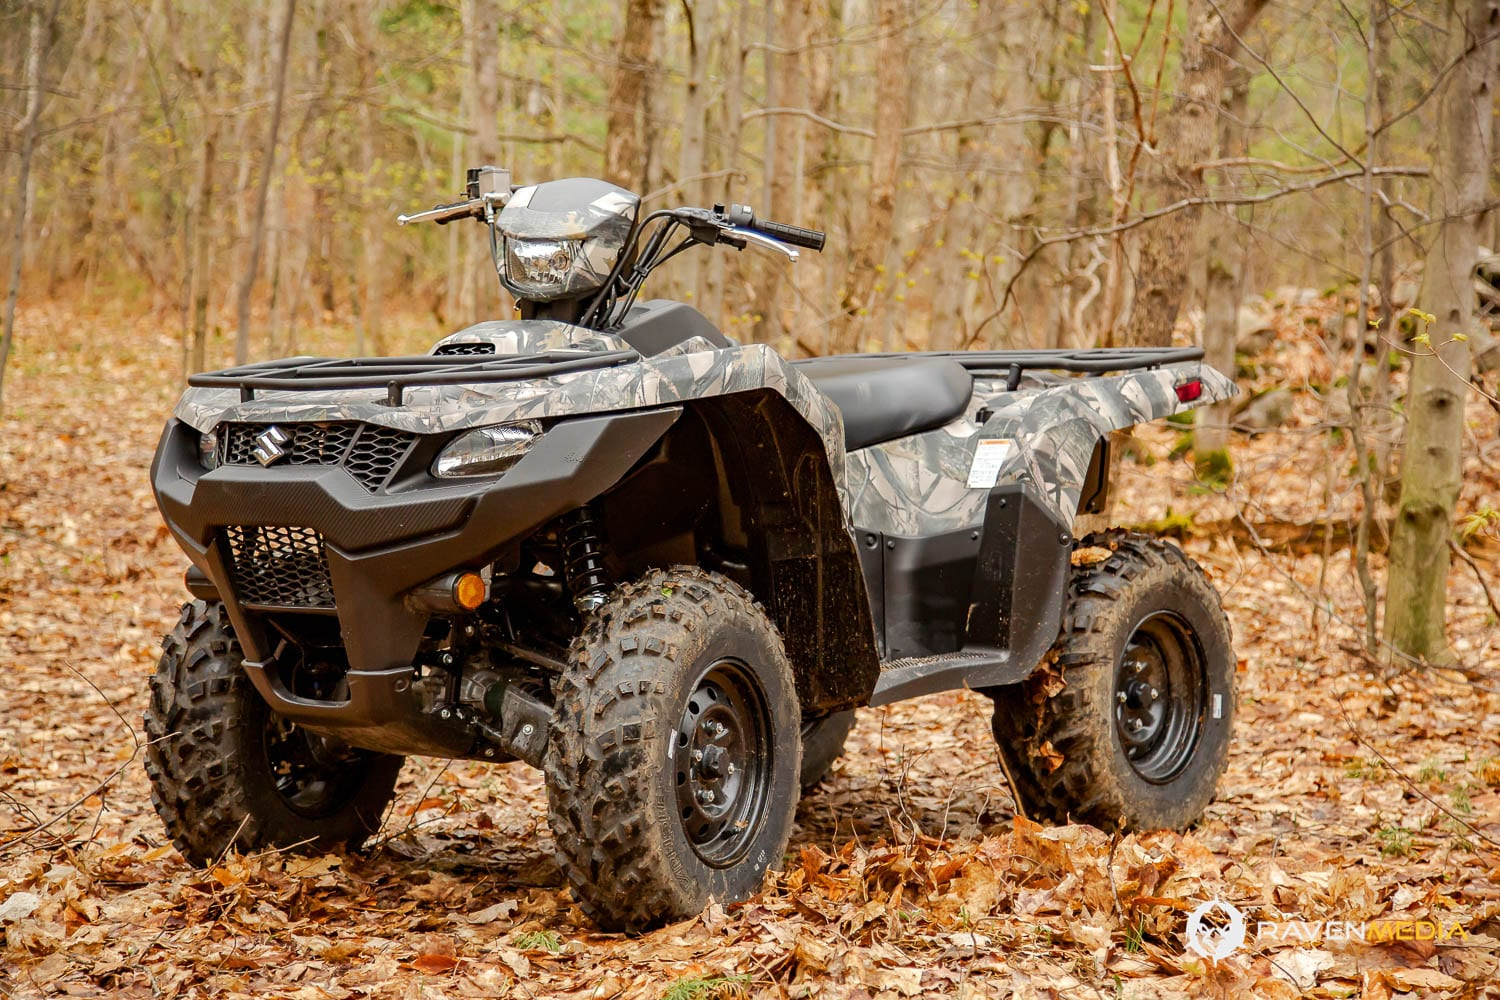 2017 suzuki king quad - HD 1500×1000